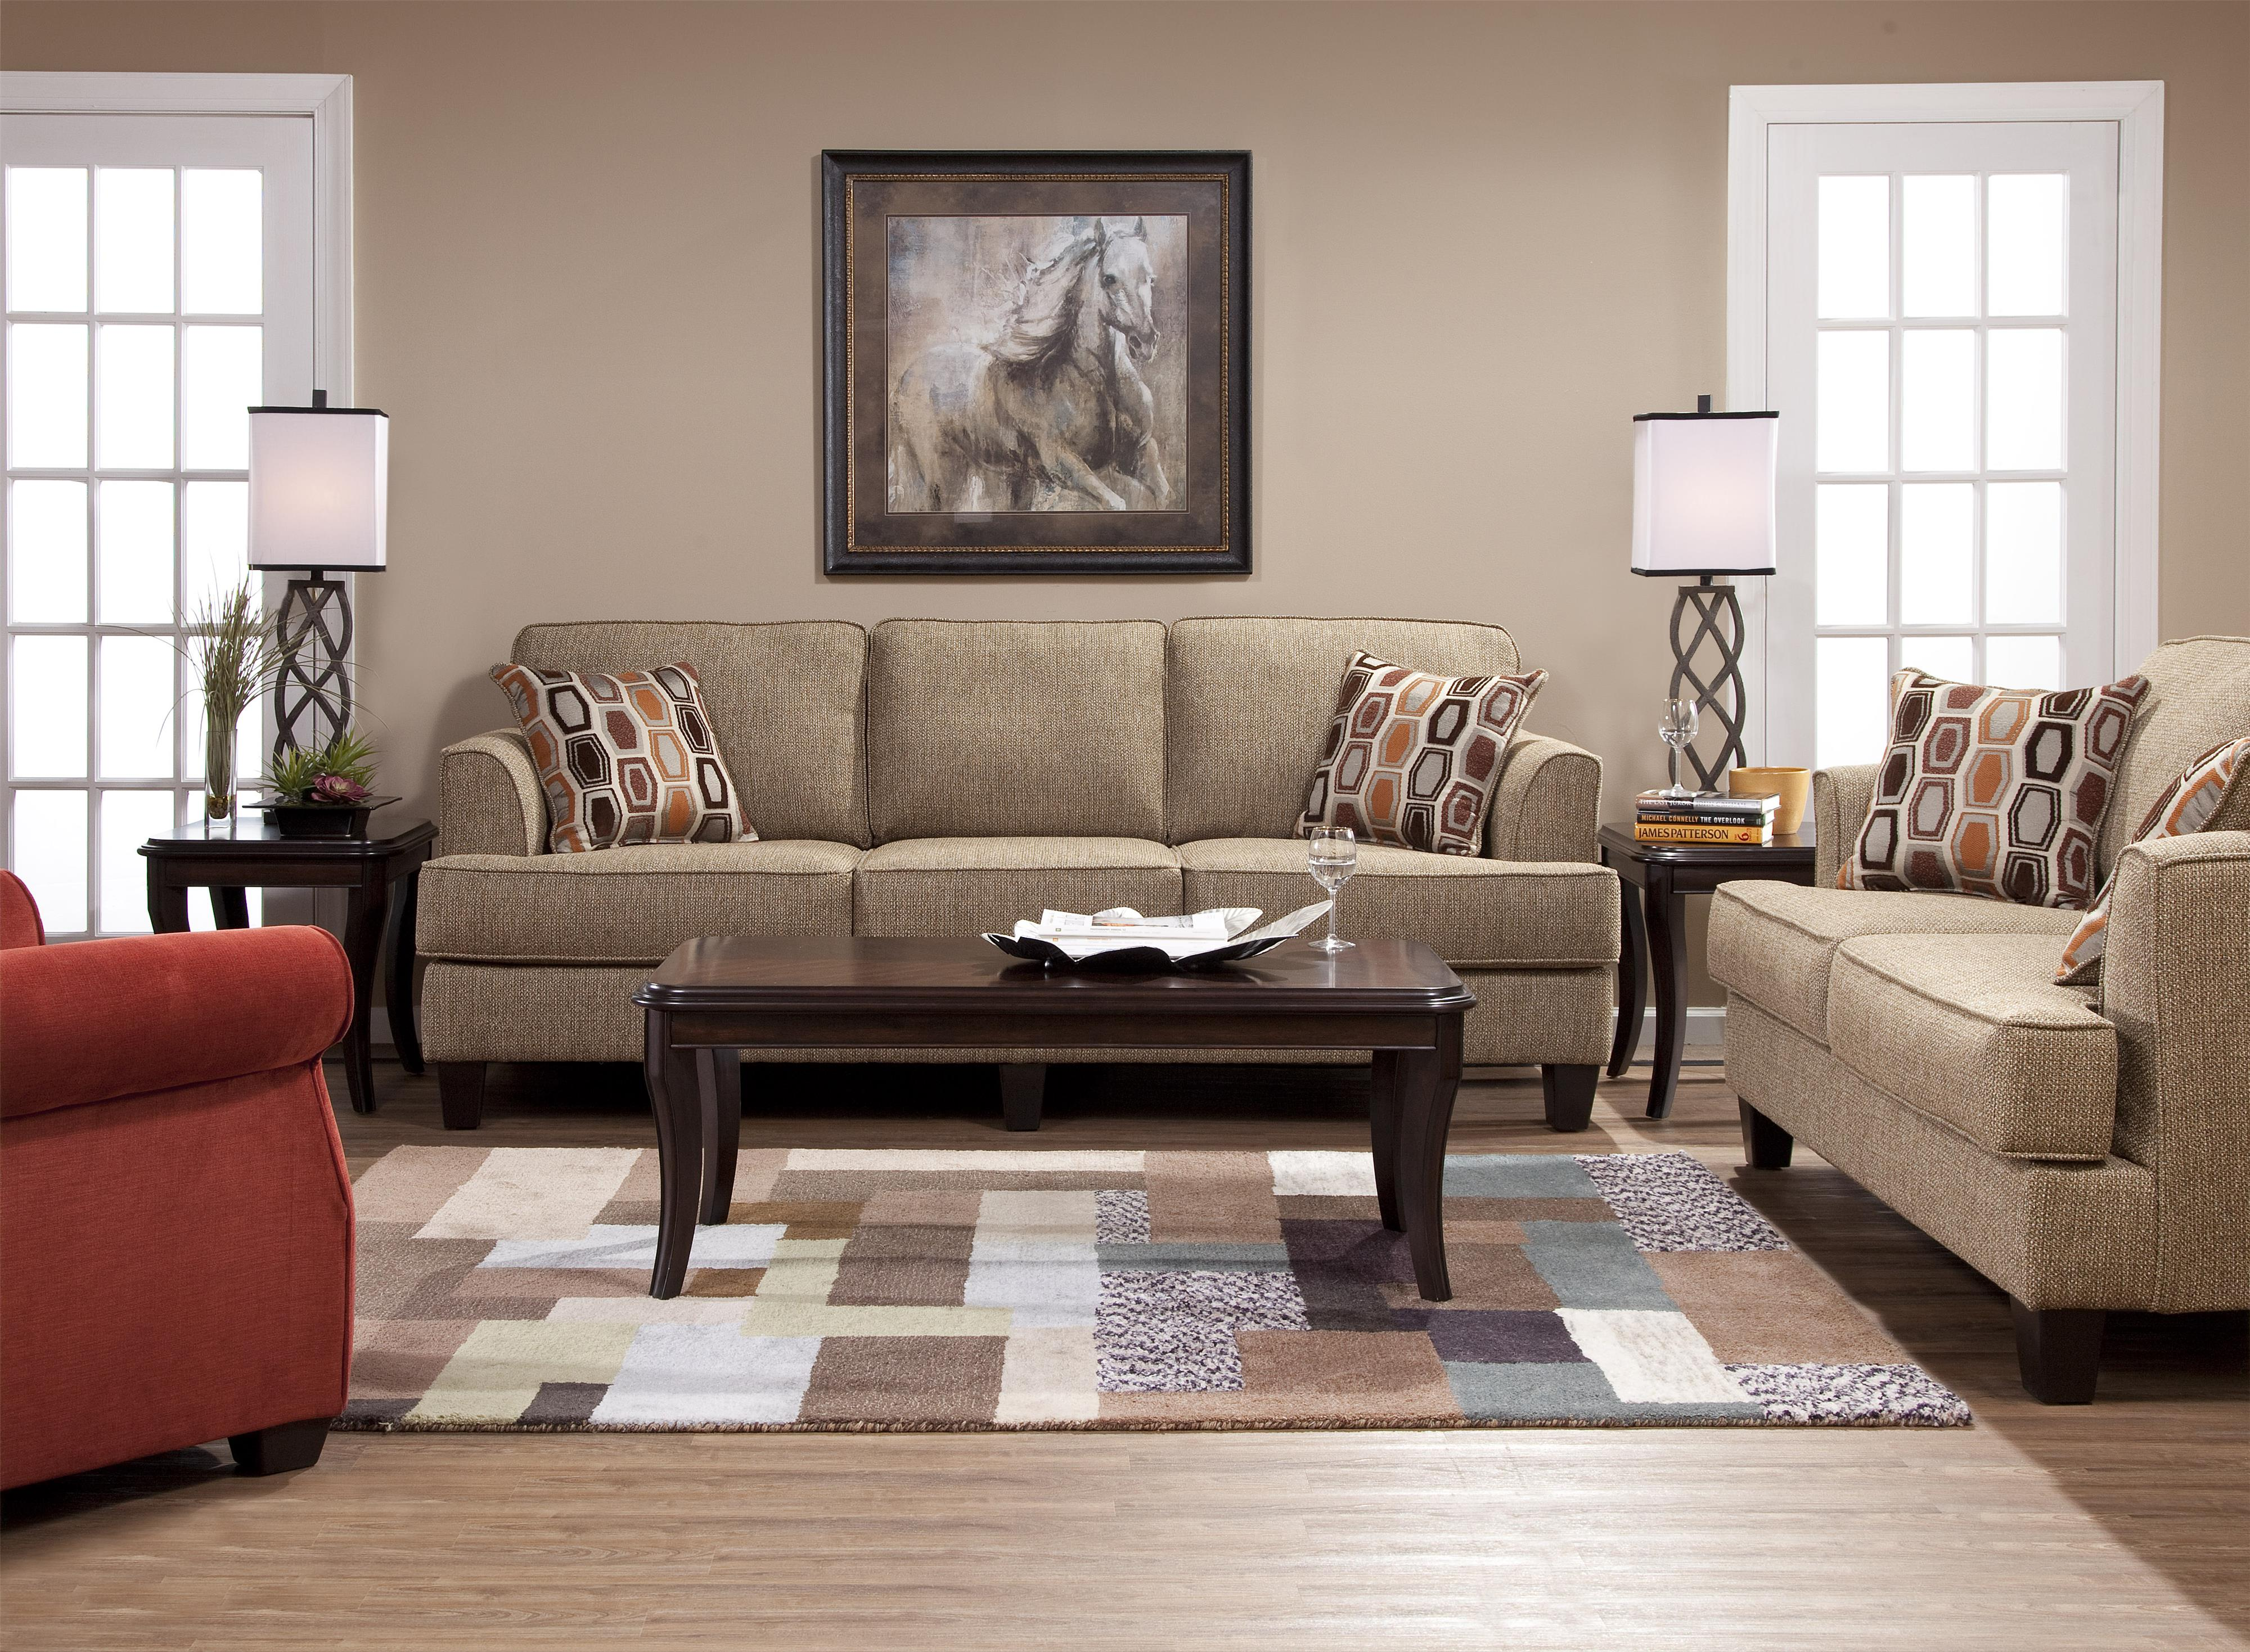 Serta upholstery by hughes furniture 5600 stationary for Living room furniture groups